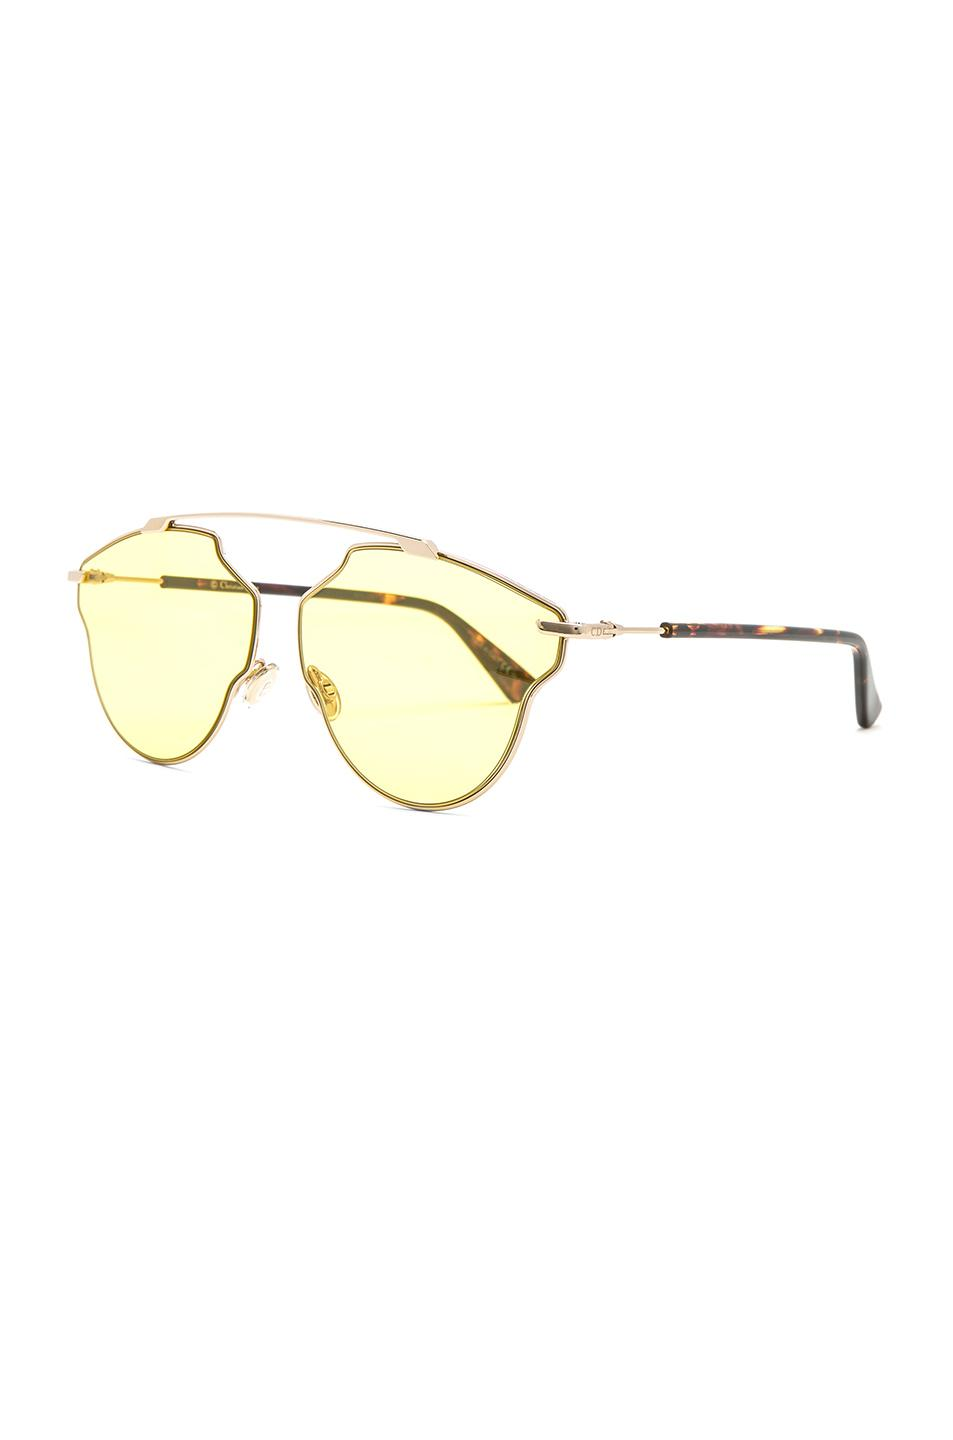 92d8100f1c75 Dior So Real Pops Sunglasses in Metallic - Save 21.315789473684205 ...